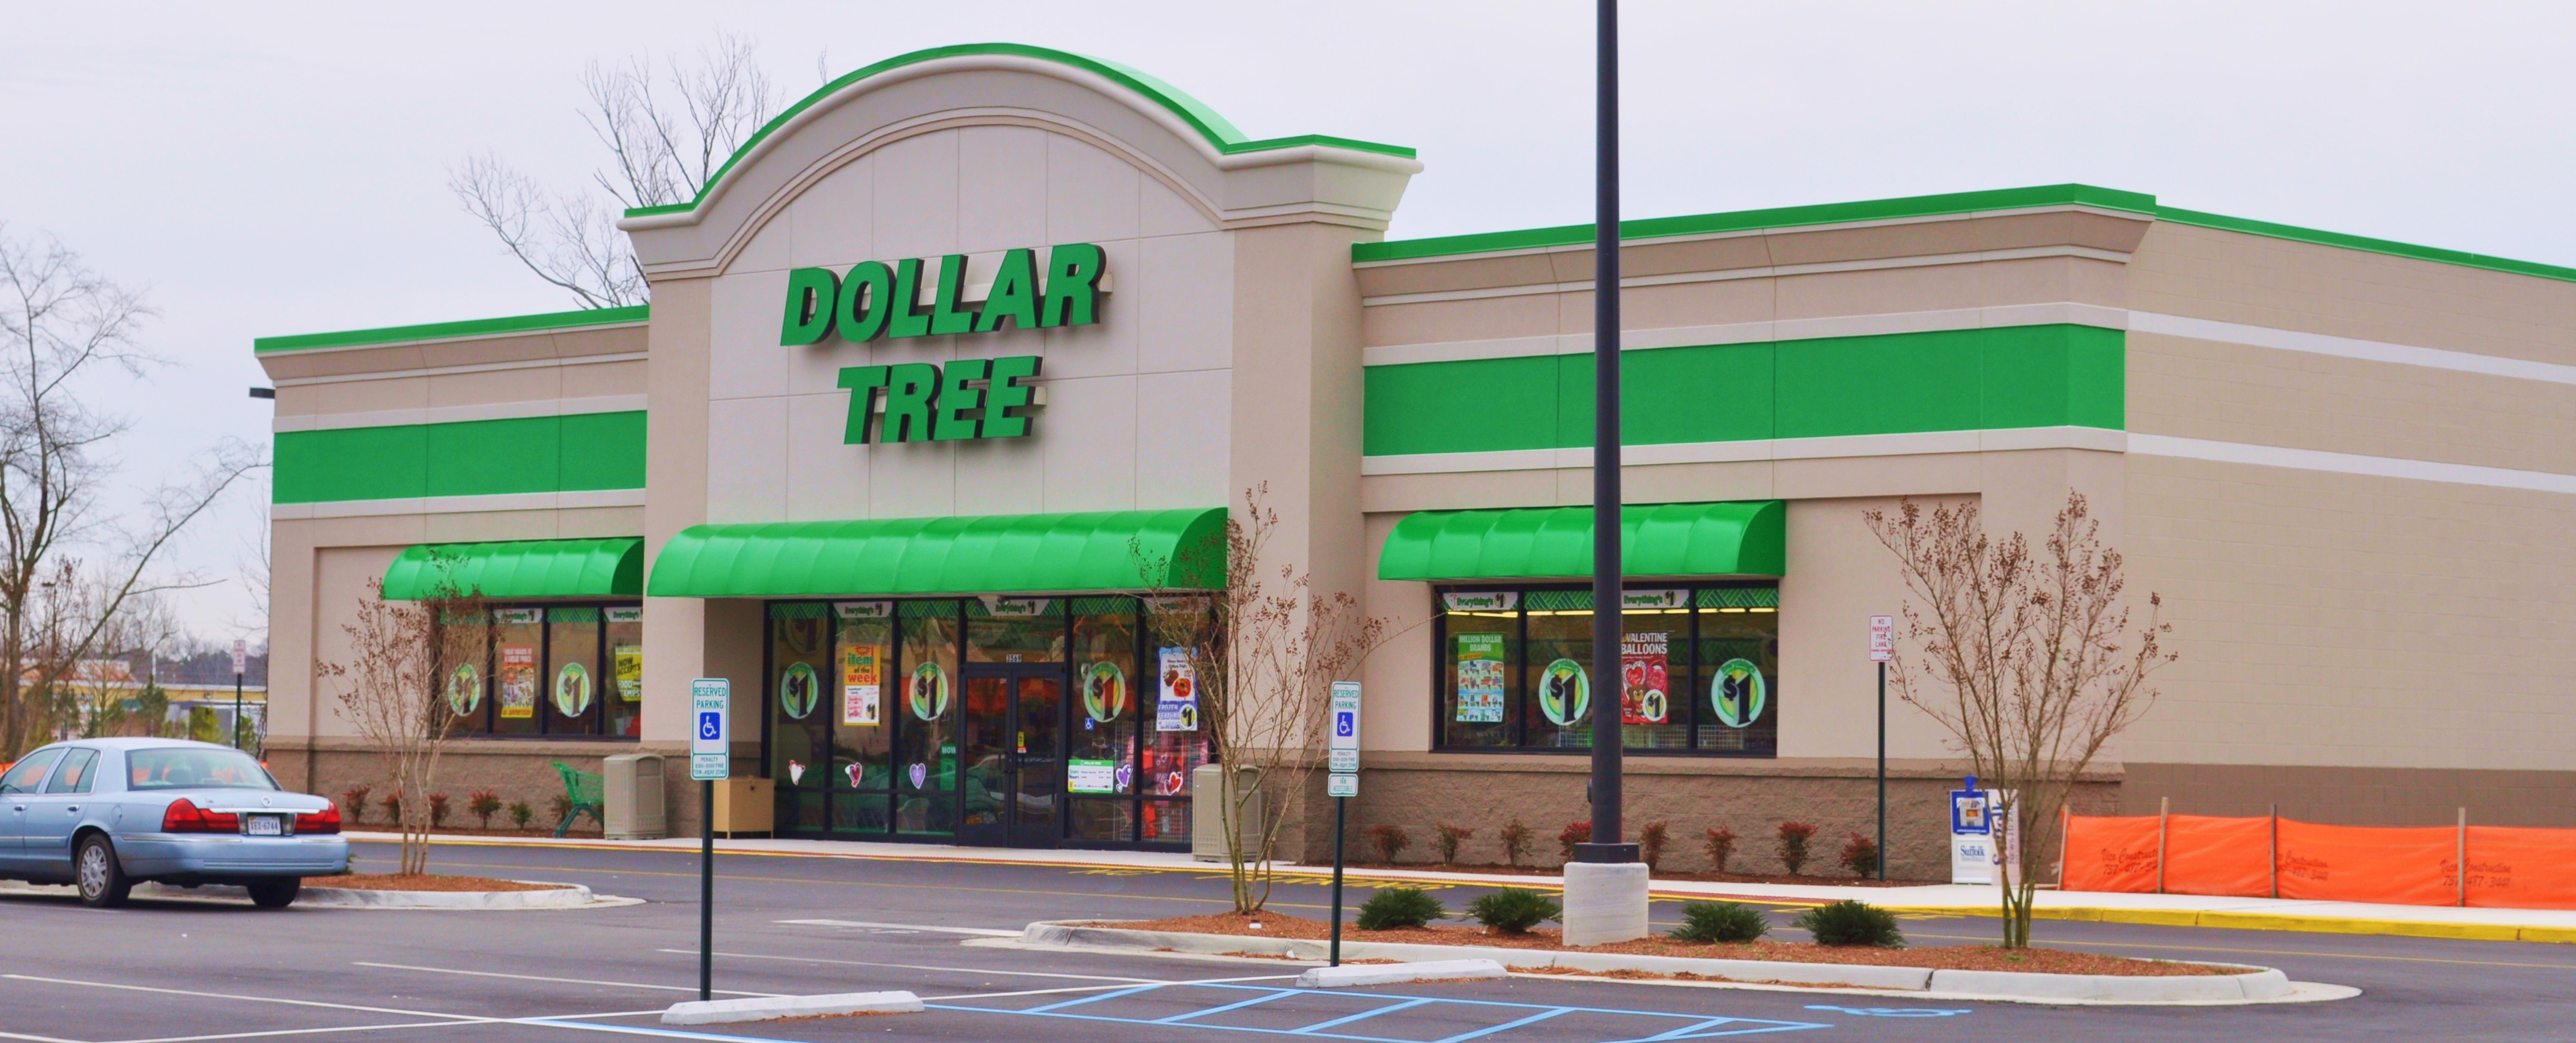 10 Products You Should Always Buy From The Dollar Tree